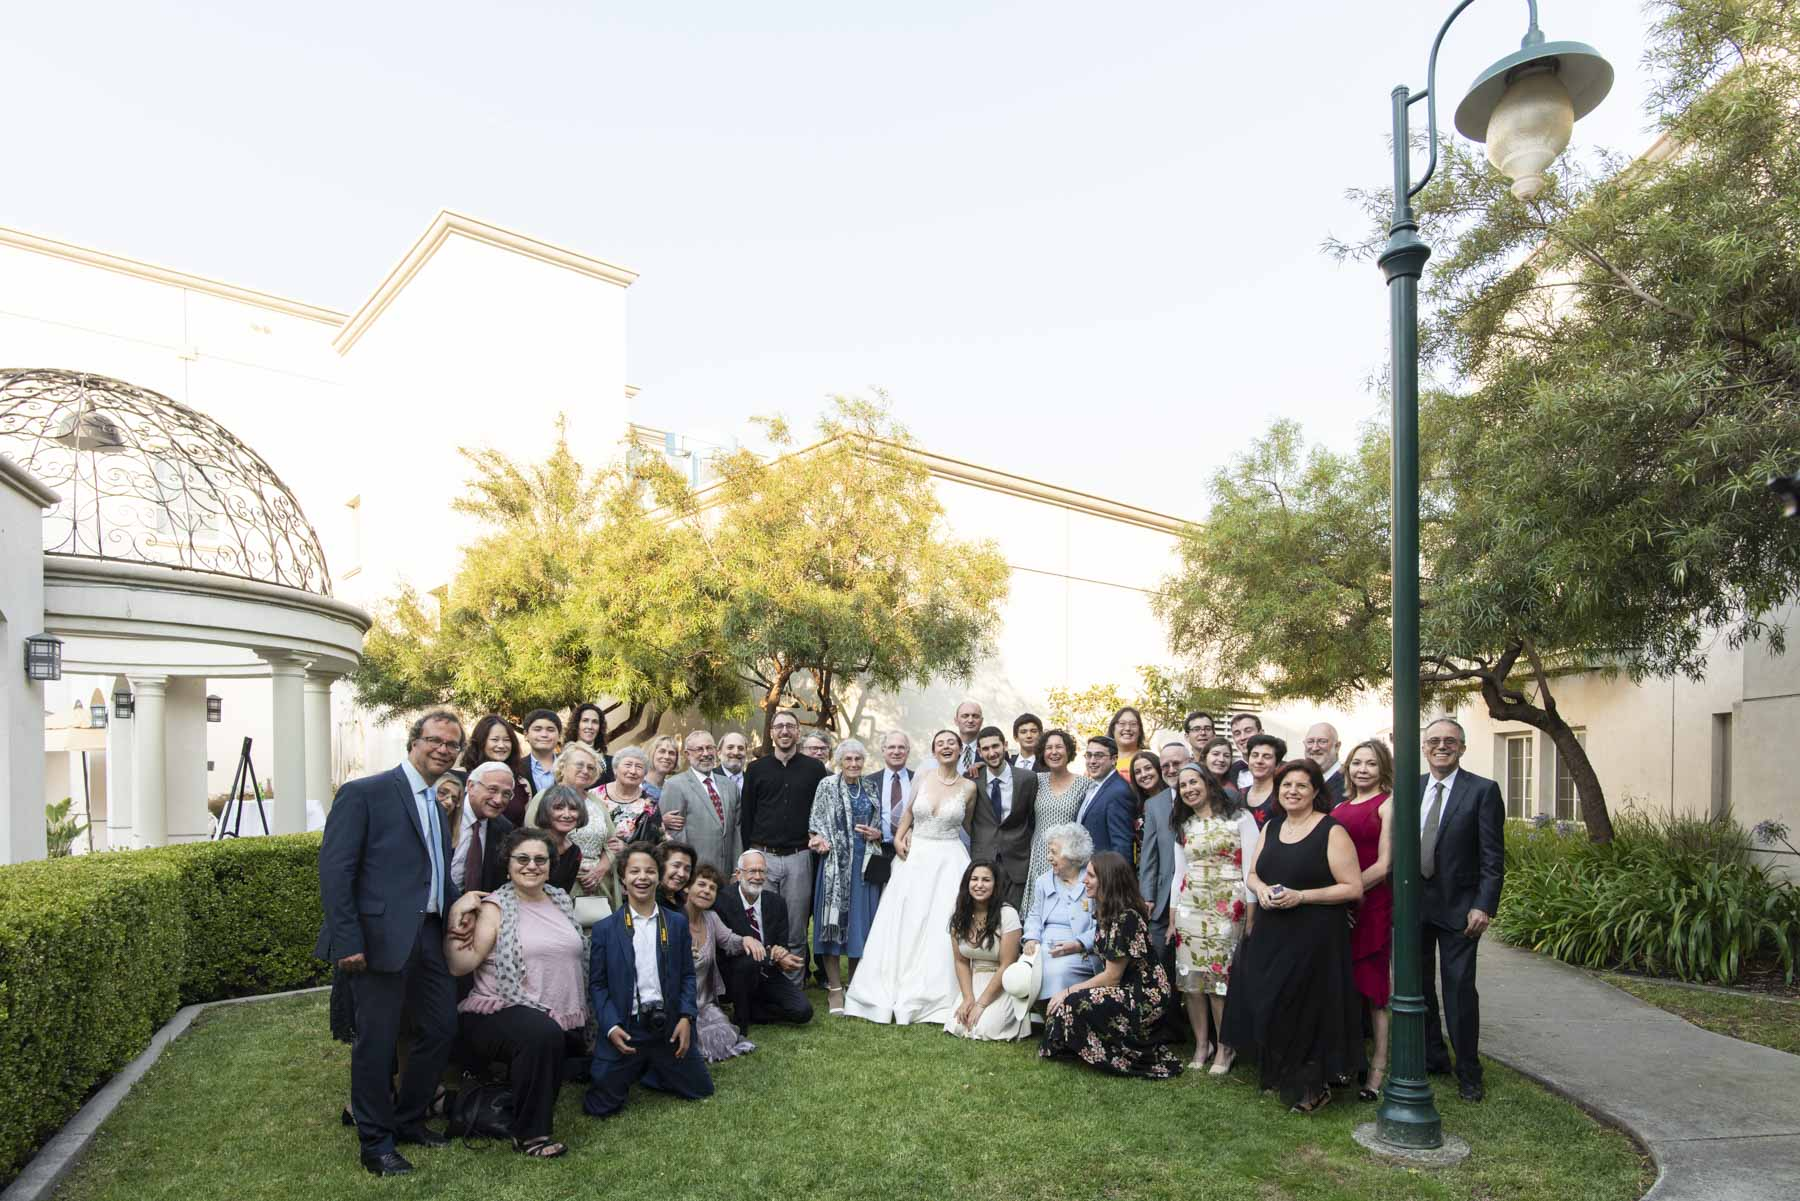 sanmateo_wedding_photographer_044.jpg